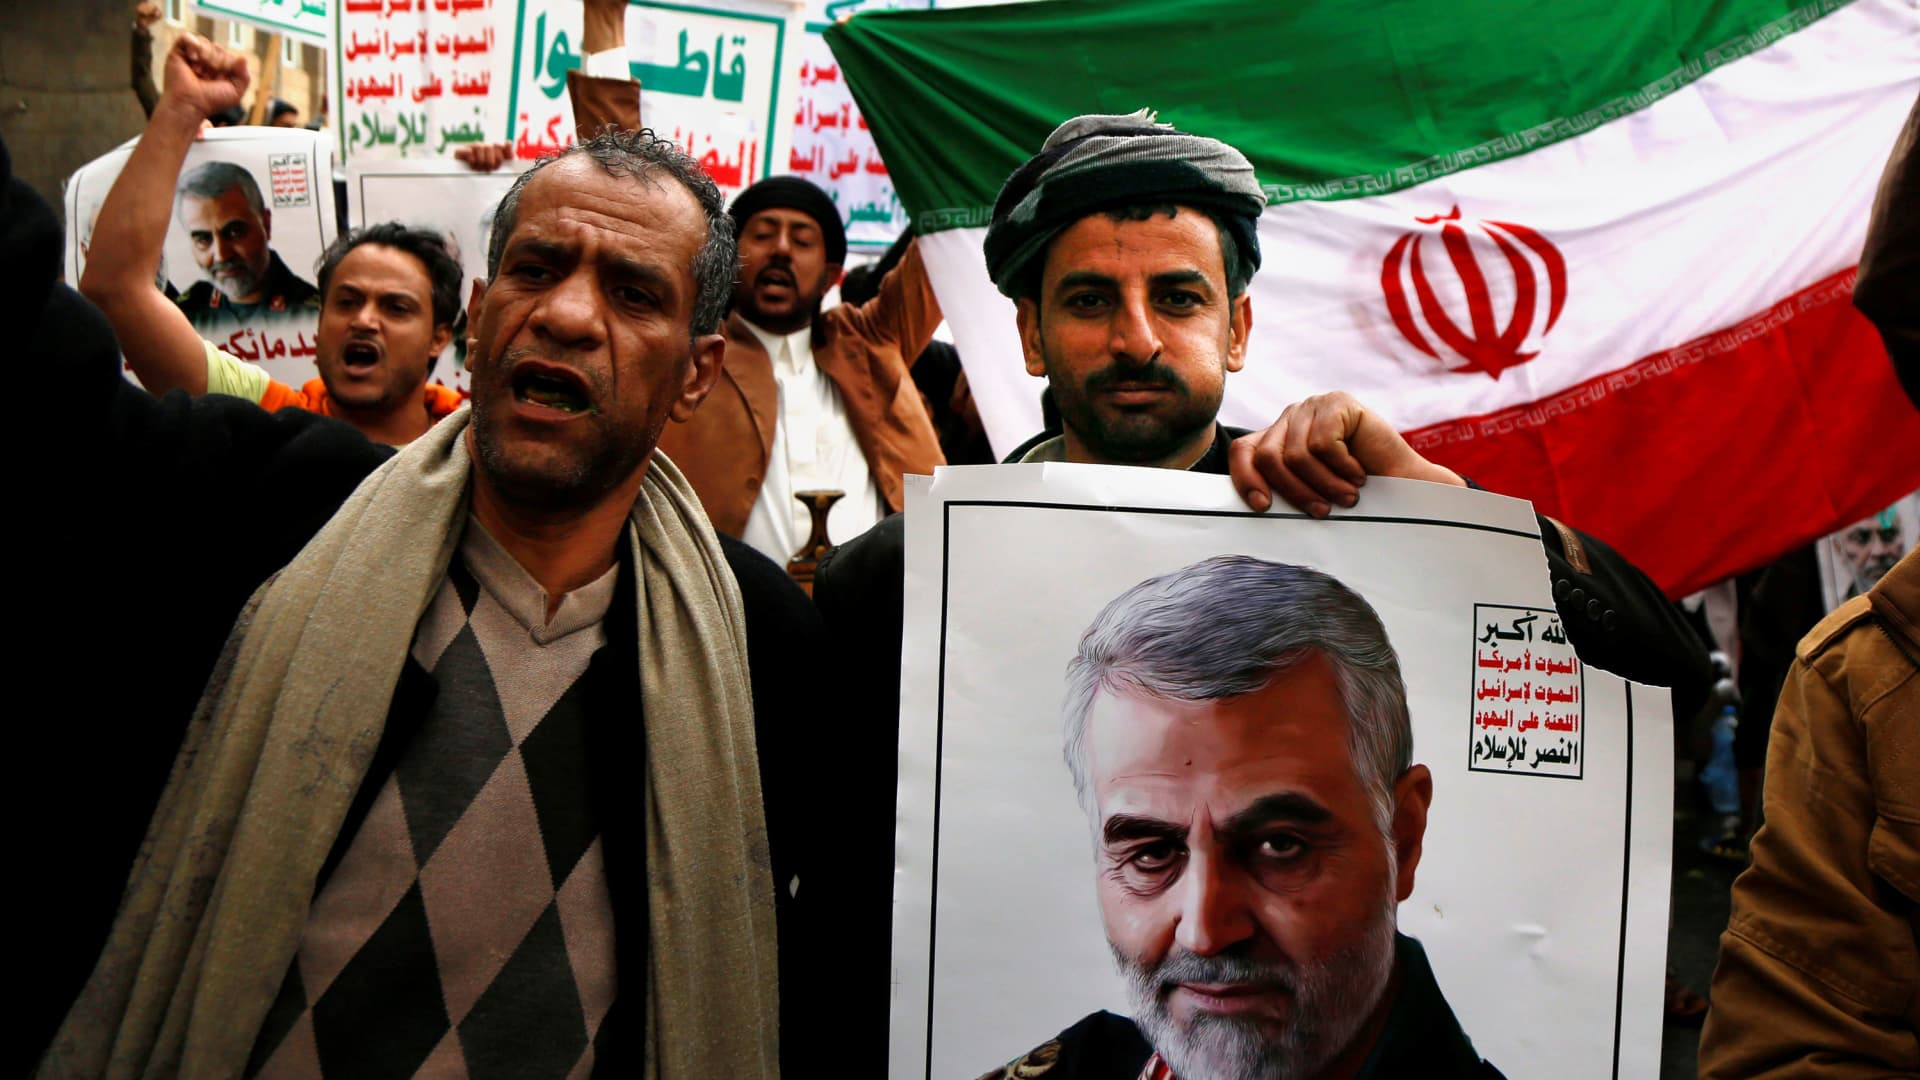 People gather to protest the US air strike in Iraq that killed Iranian commander Qasem Soleimani, who headed Iran's Revolutionary Guards' elite Quds force in Sanaa, Yemen on January 6, 2020.